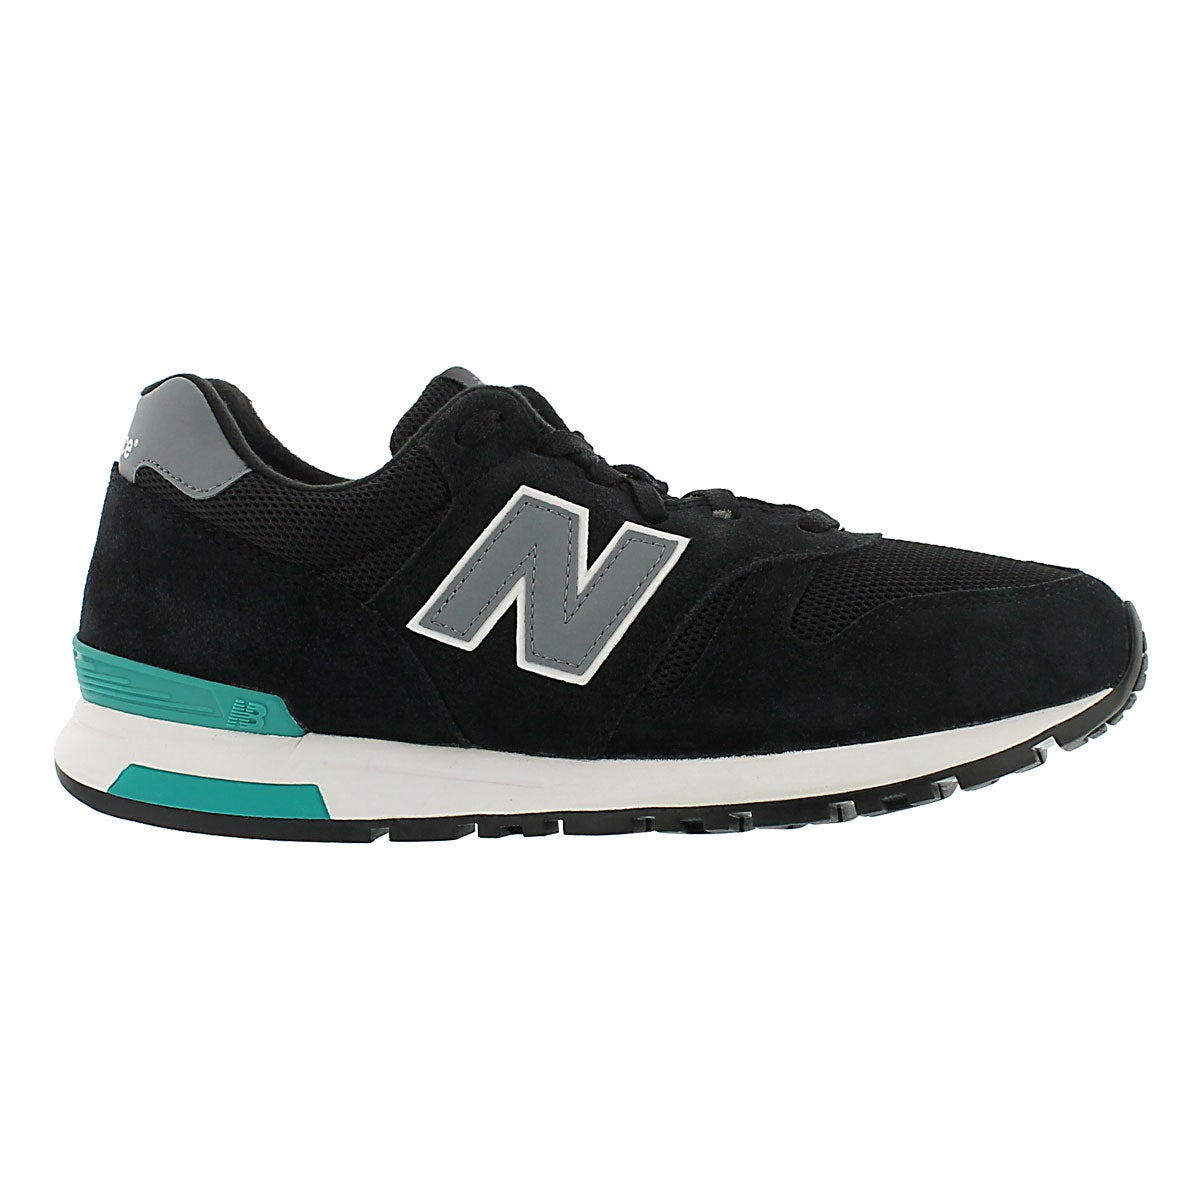 Mns 565 blk/gry lace up running shoe